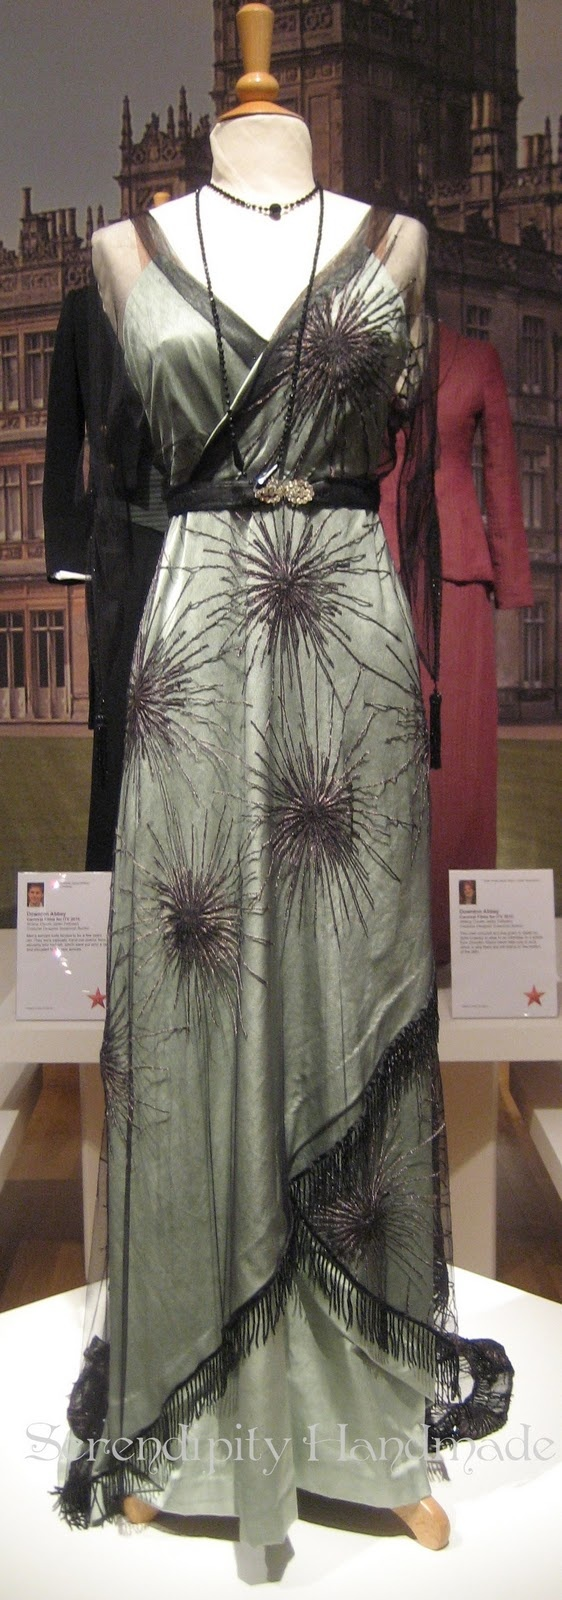 Downton Abbey dress - Worn by Lady Mary Crawley, played by Michelle Dockery - @~ Mlle